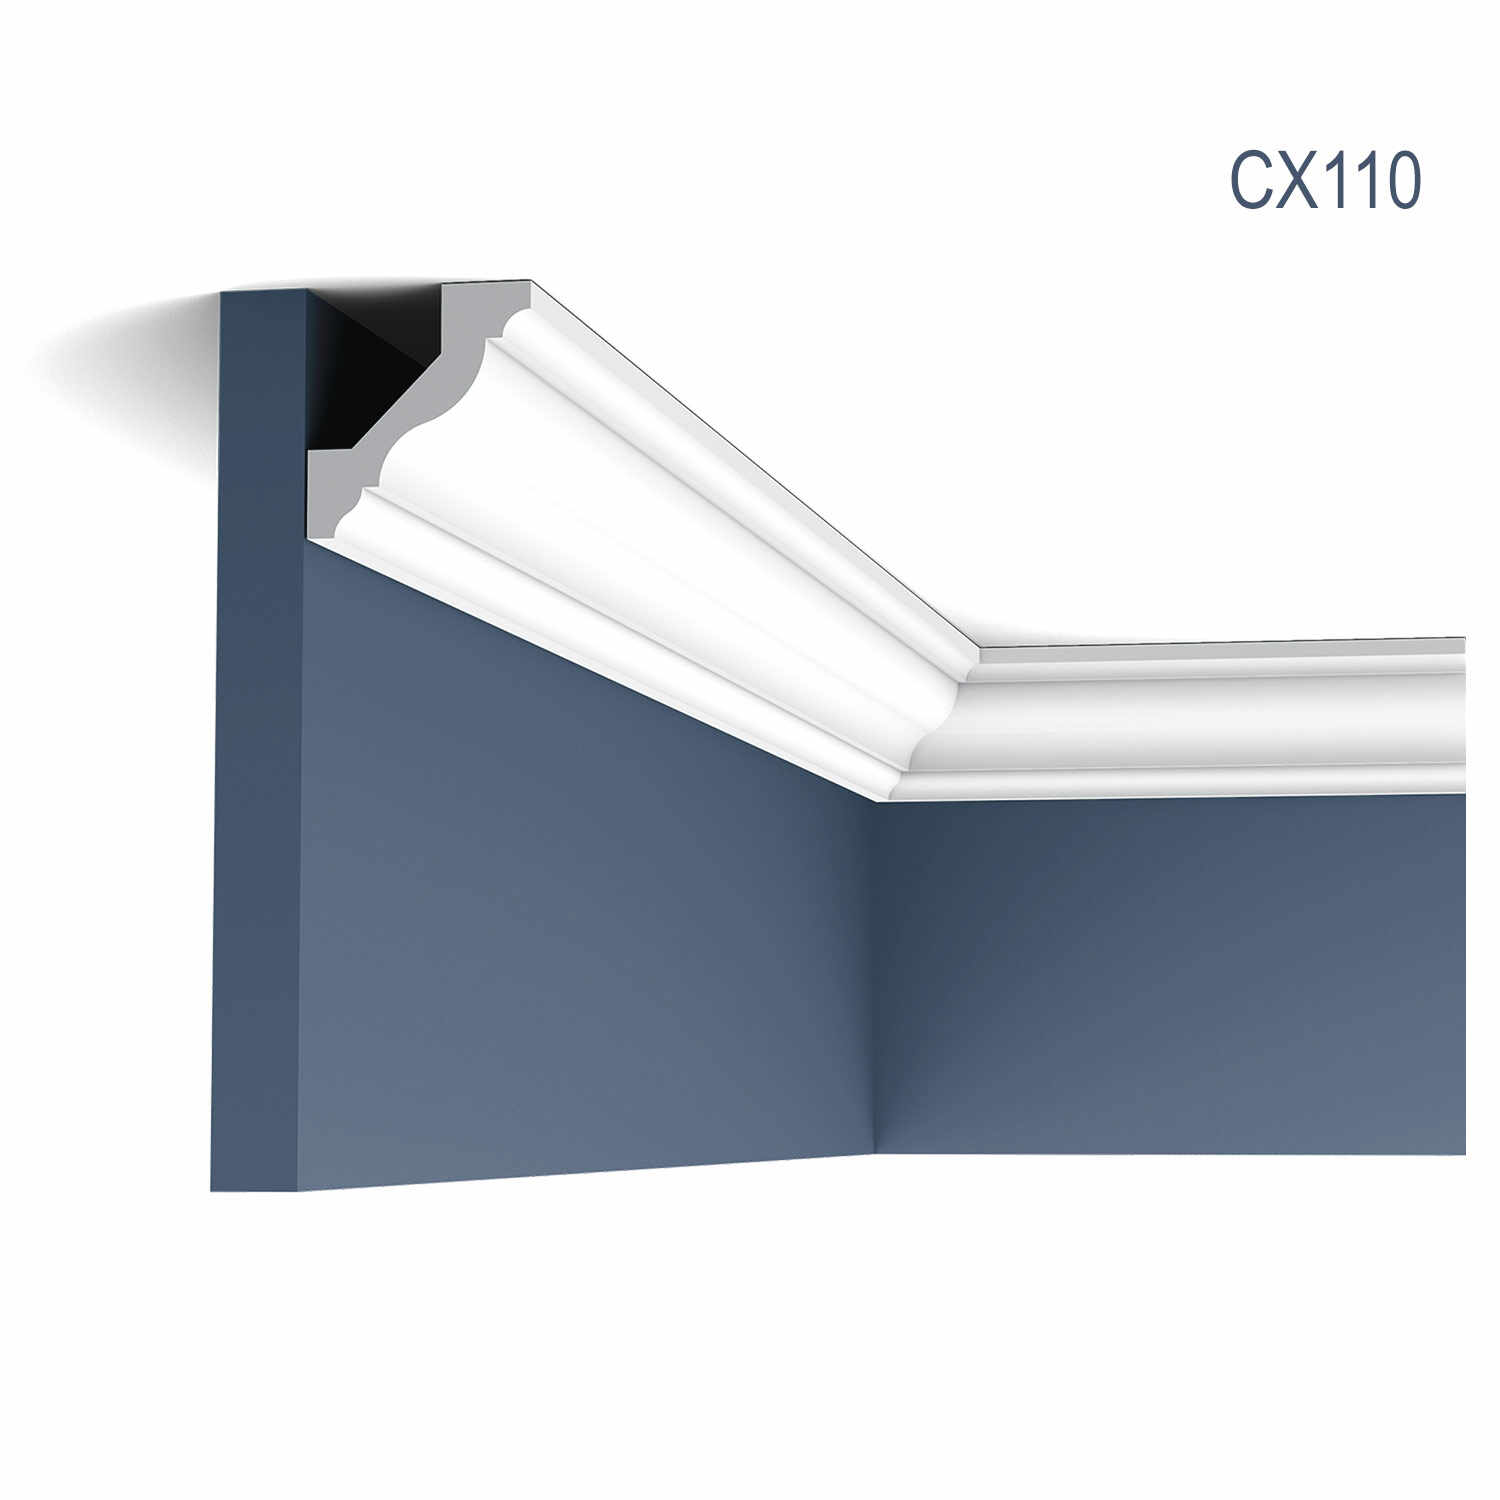 Cornisa Axxent CX110, Dimensiuni: 200 X 4.5 X 4.1 cm, Orac Decor